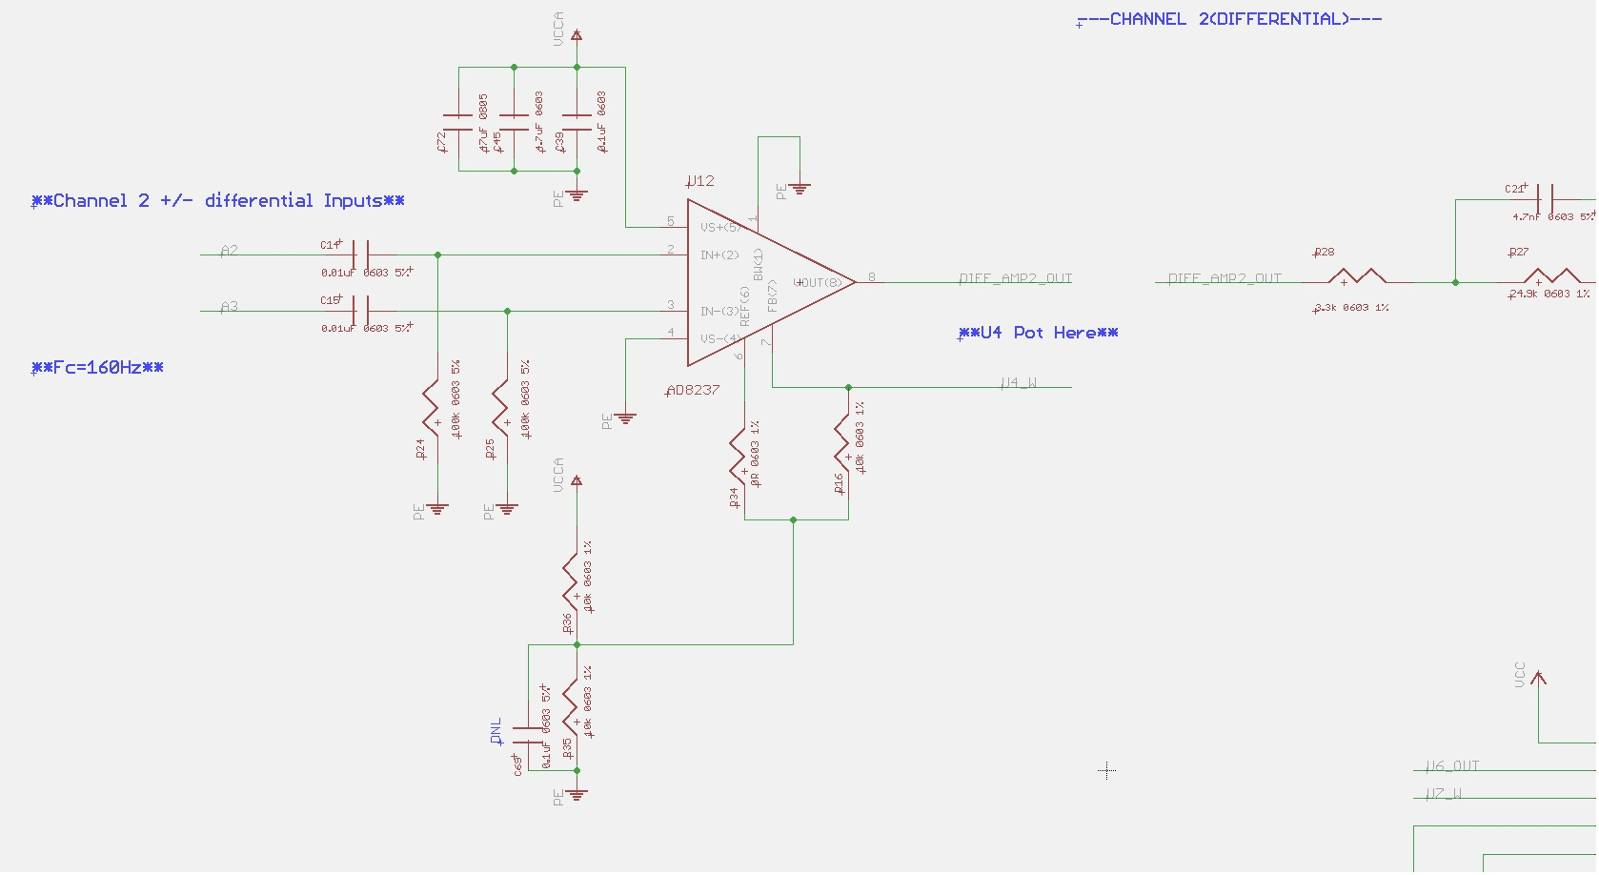 Ad8237 Oscillating When Input Voltage Or Freq Increases Qa Circuit Divider Calculator The Entire System Including 8237 Is Powered By Vcc33v Reference Set To 05vcc With A 10k Resistor Drives Another Stage That